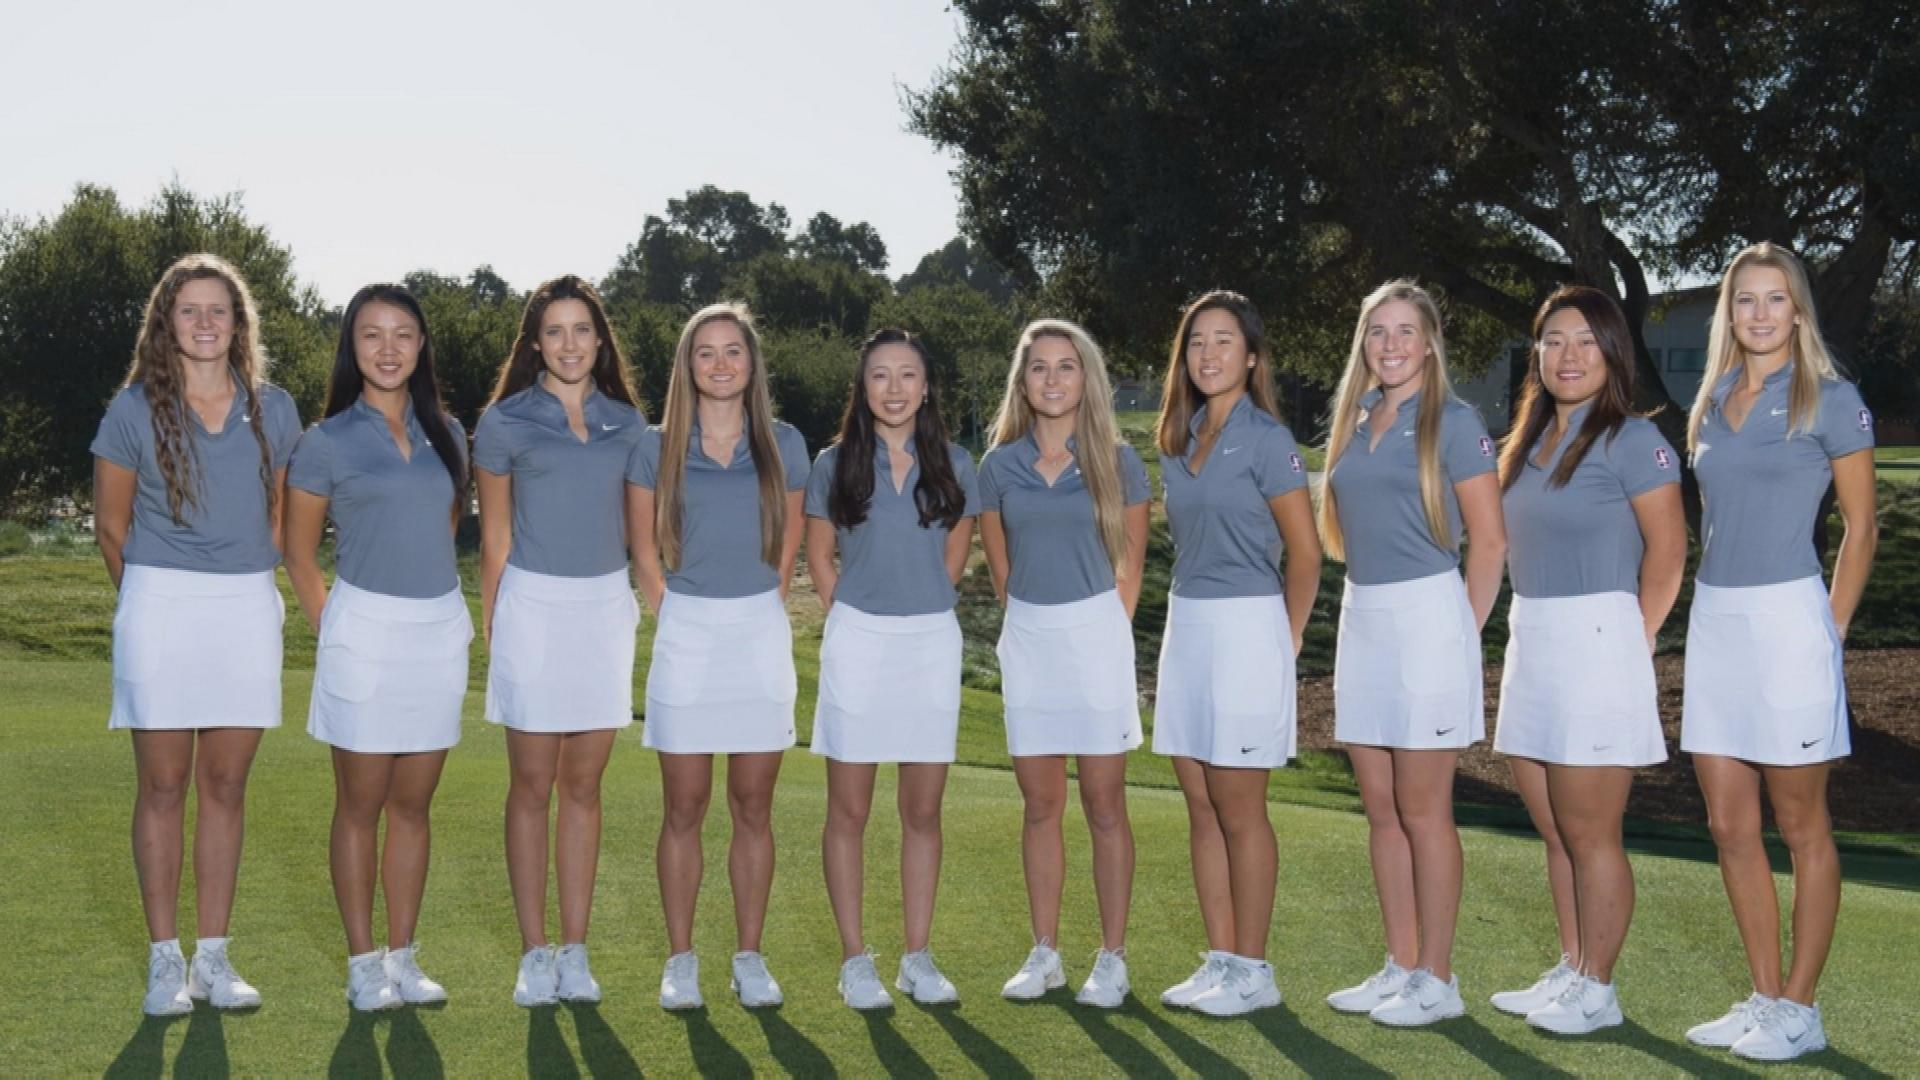 http://golfchannel-a.akamaihd.net/ramp/728/455/102616_cc_east_lake_cup_womens_preview.jpg